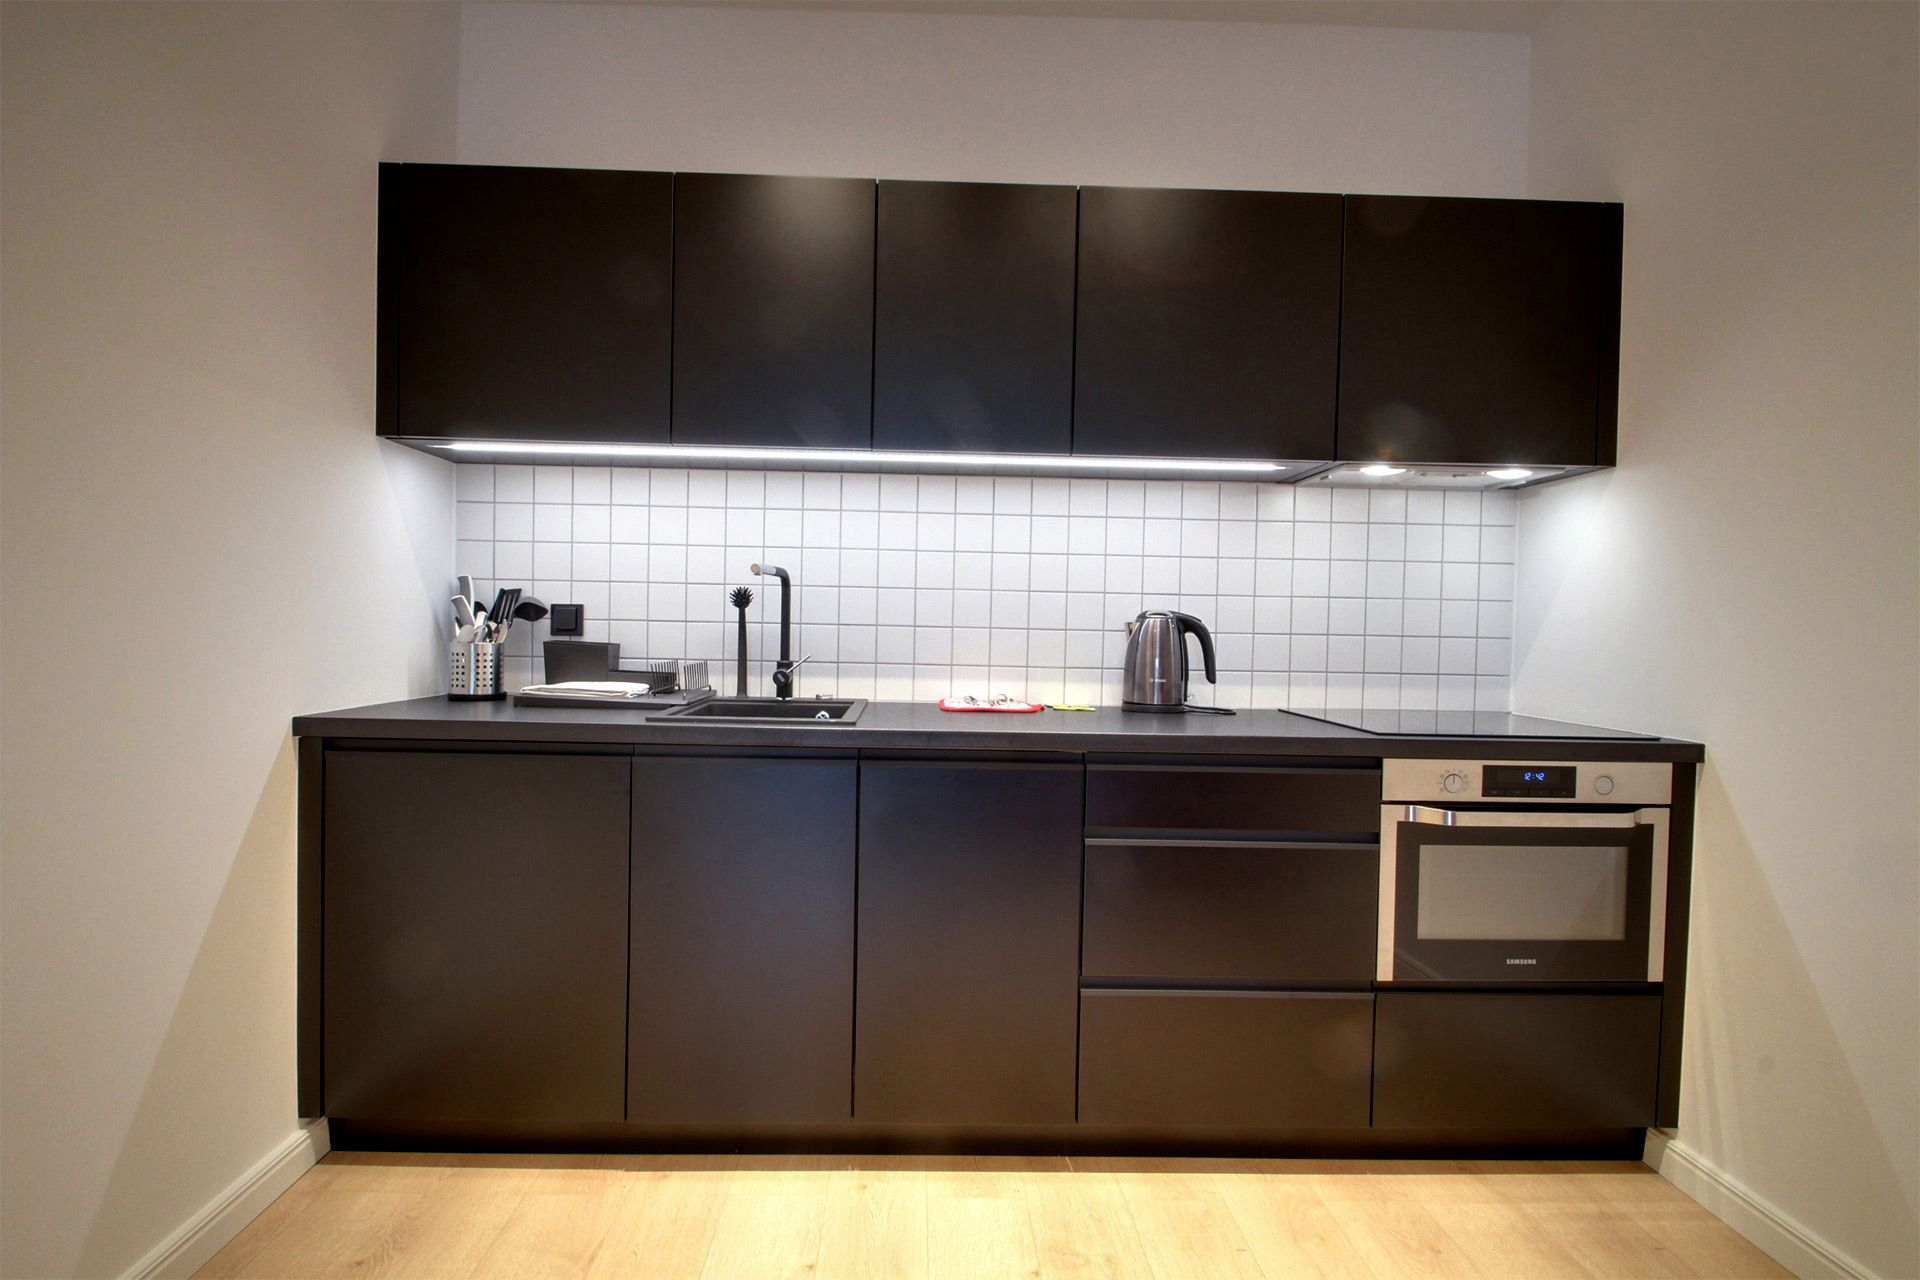 2 Bedroom - Large apartment to rent in Warsaw UPR-A-065-2